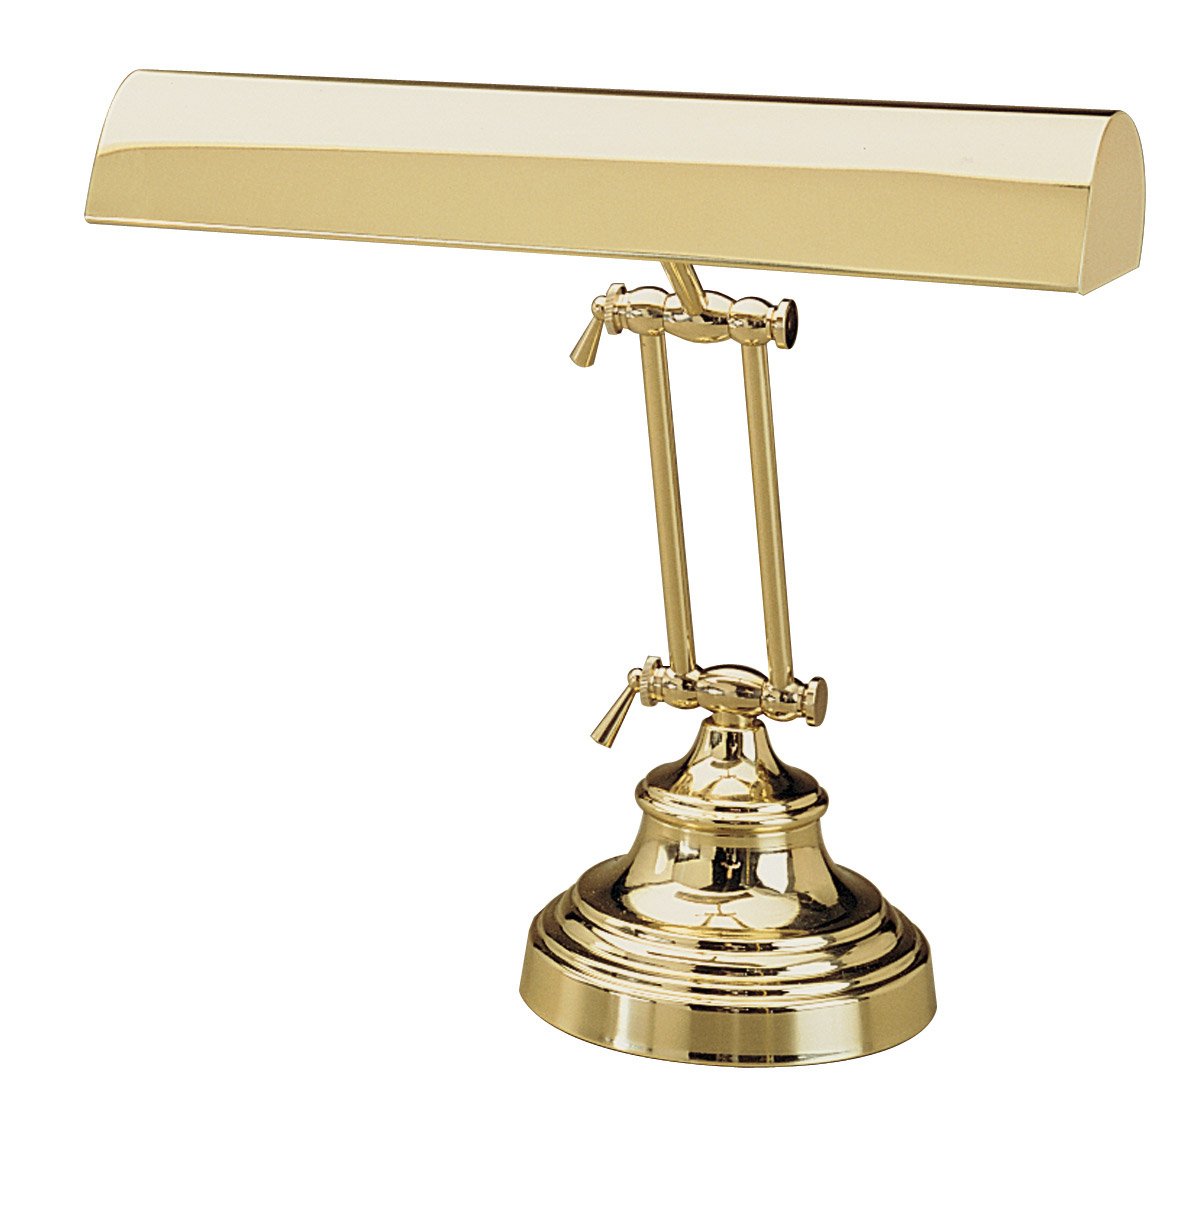 home lamps table lamps piano lamps house of troy p14 231 61. Black Bedroom Furniture Sets. Home Design Ideas